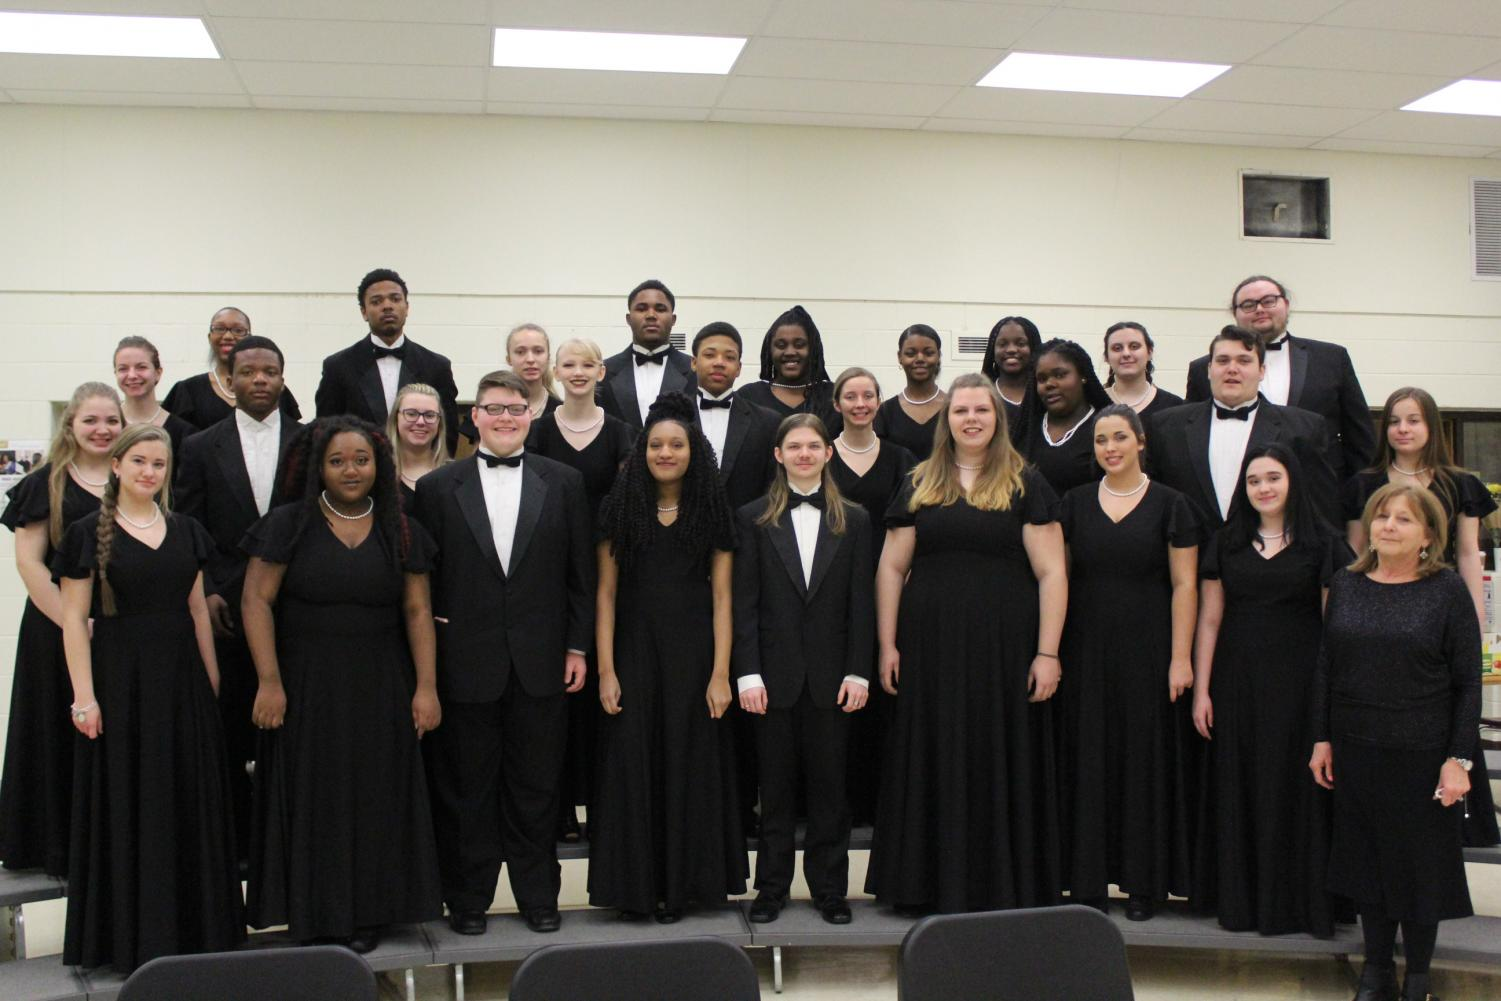 Symphonic choir poses for a picture before heading off to Choral Festival